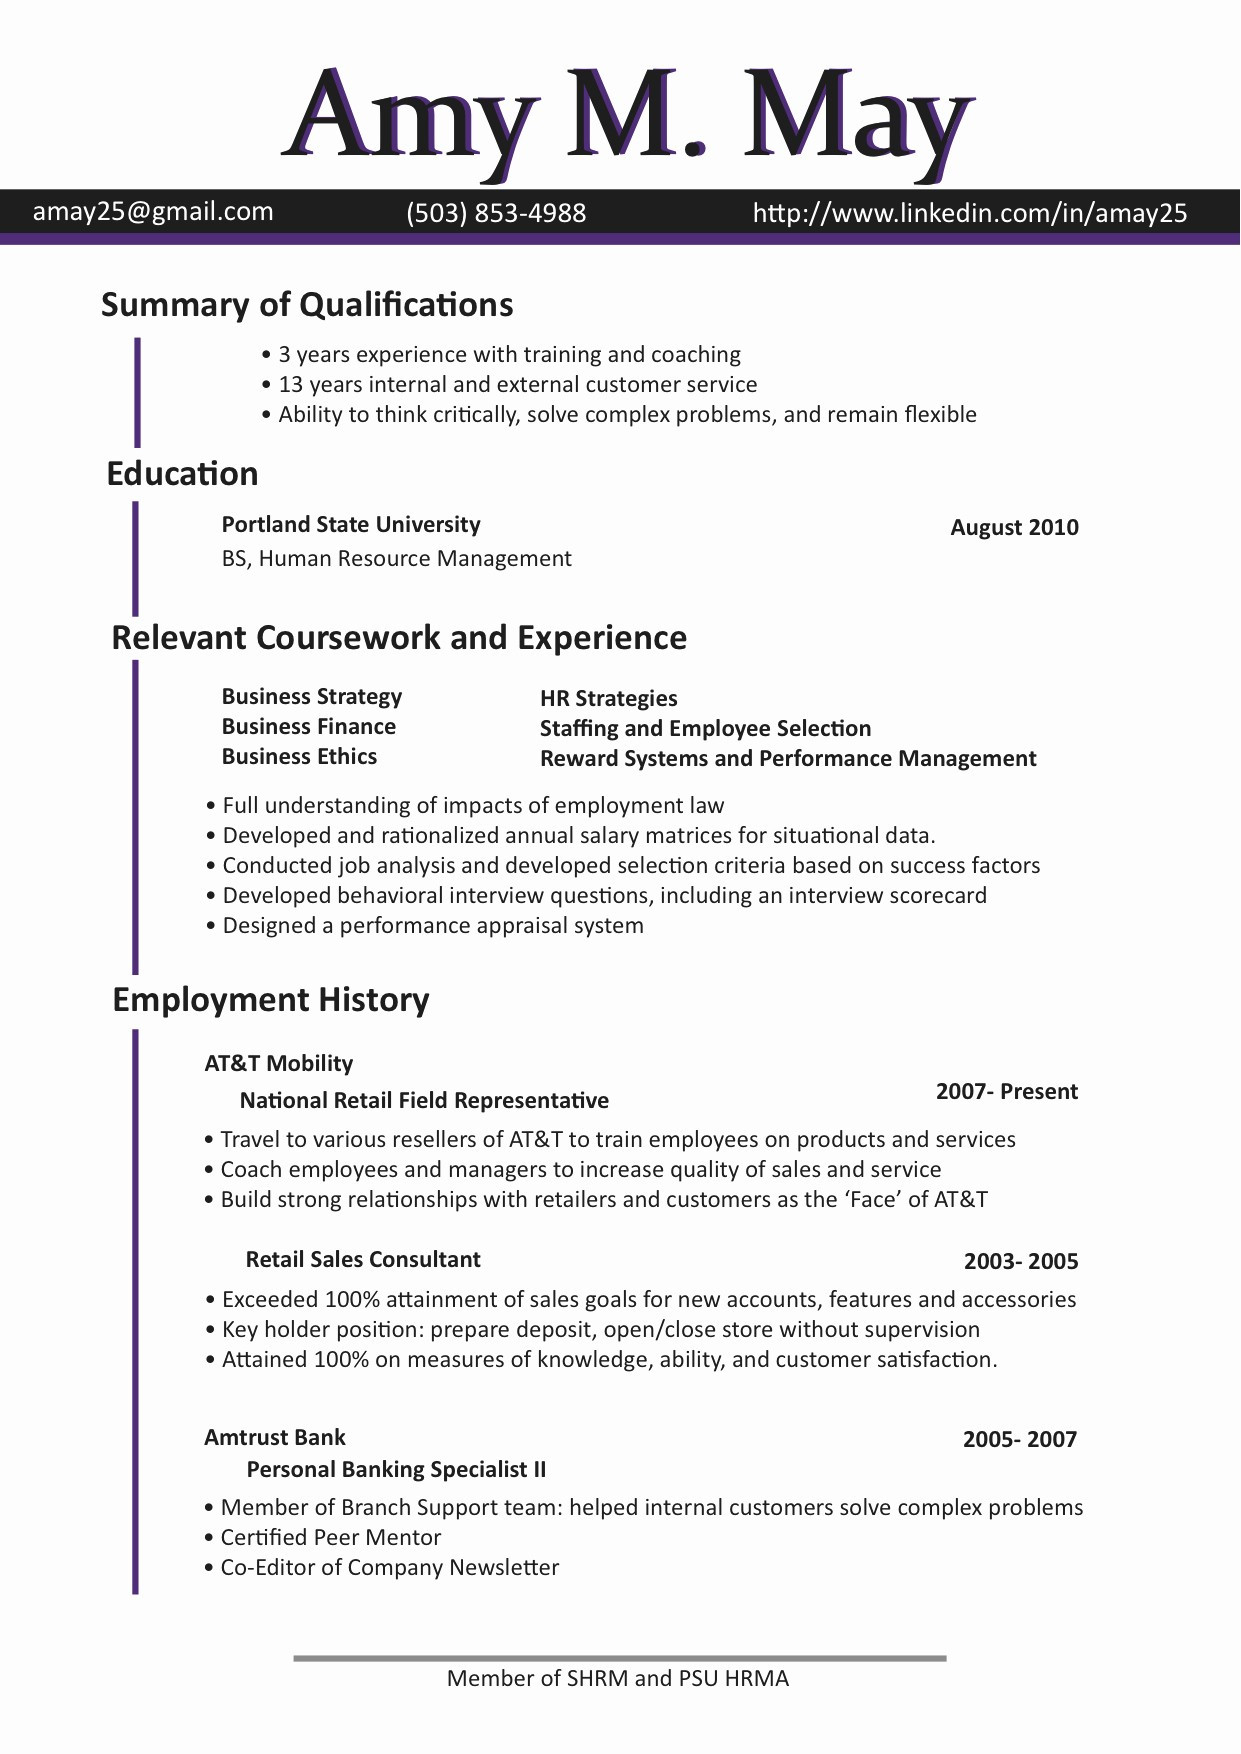 Search for Resumes - Free Resume Search Sites for Employers Example New Programmer